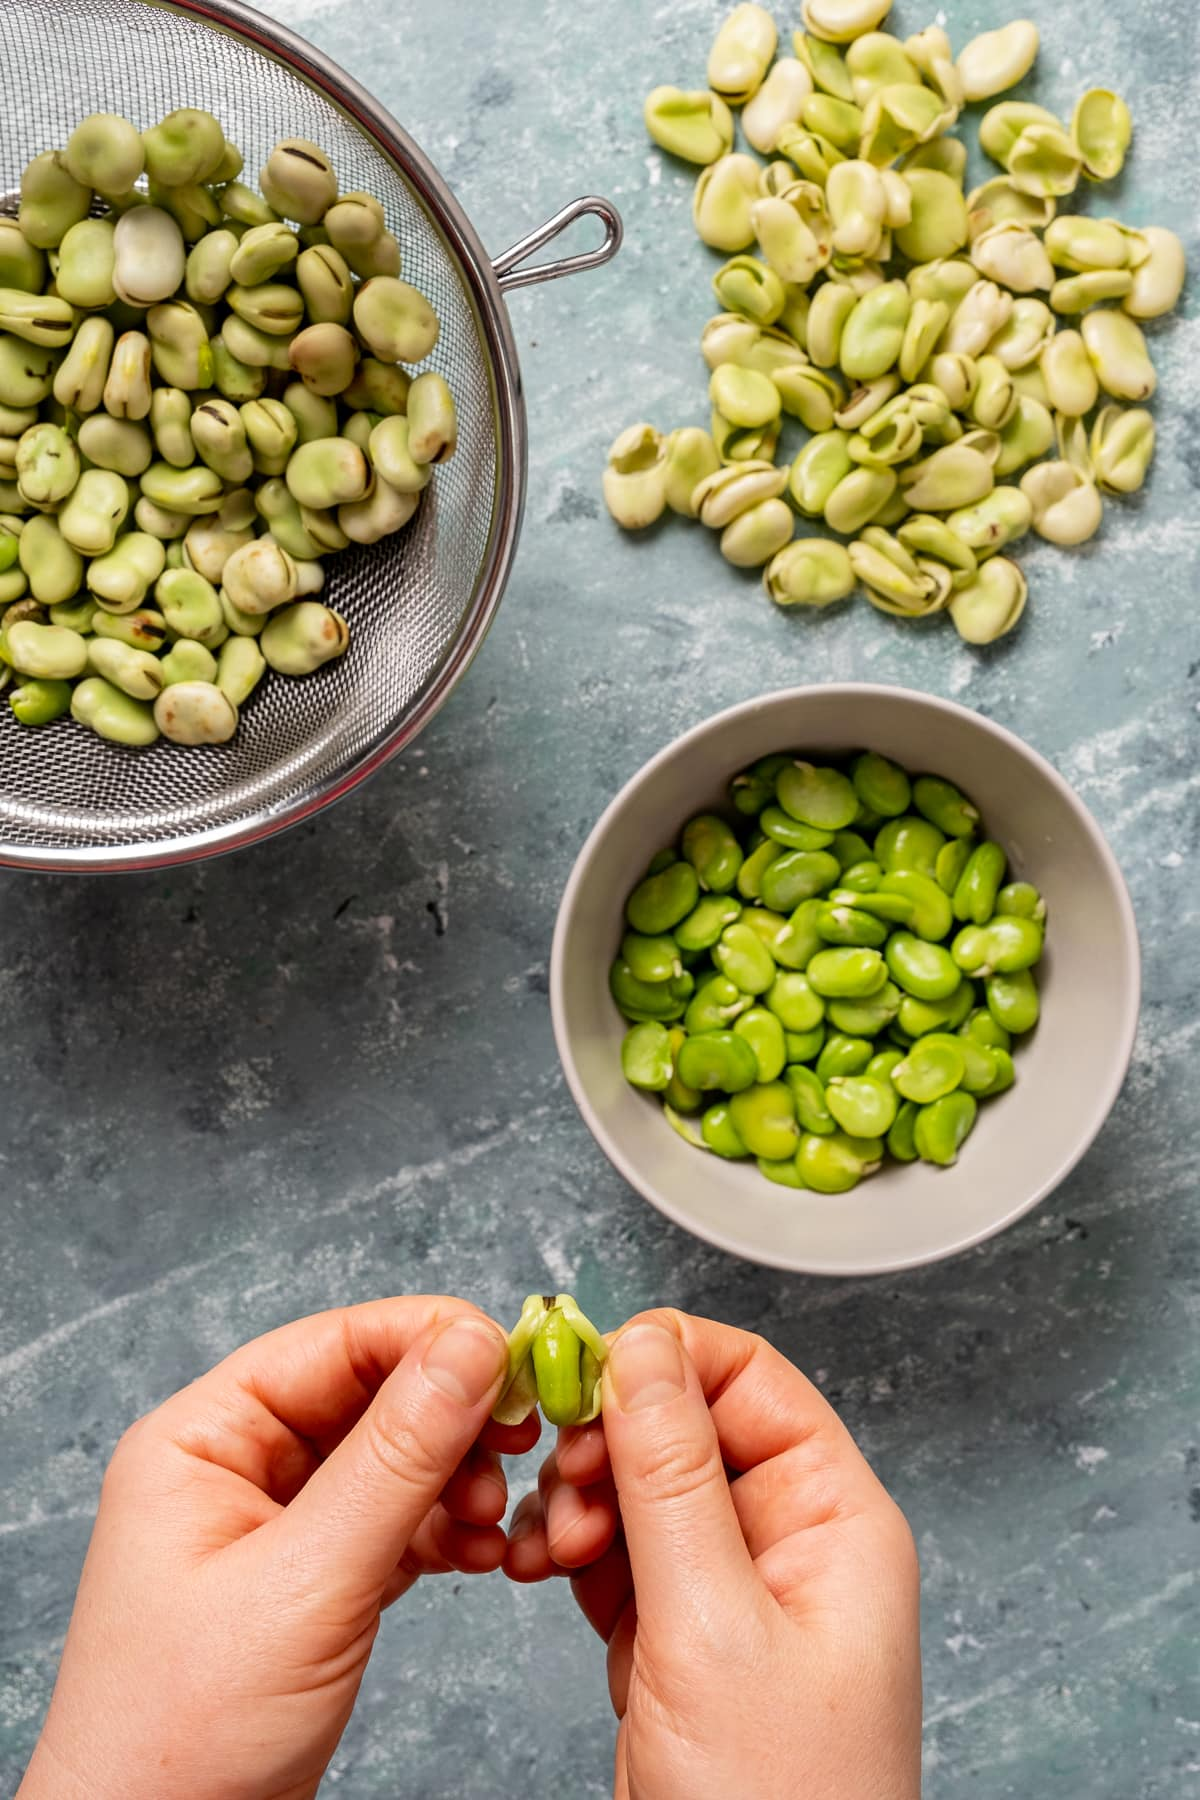 Hands peeling fresh fava beans removed from the pod, more shelled beans in a bowl, their skins on the ground and unpleed fava beans in a strainer.